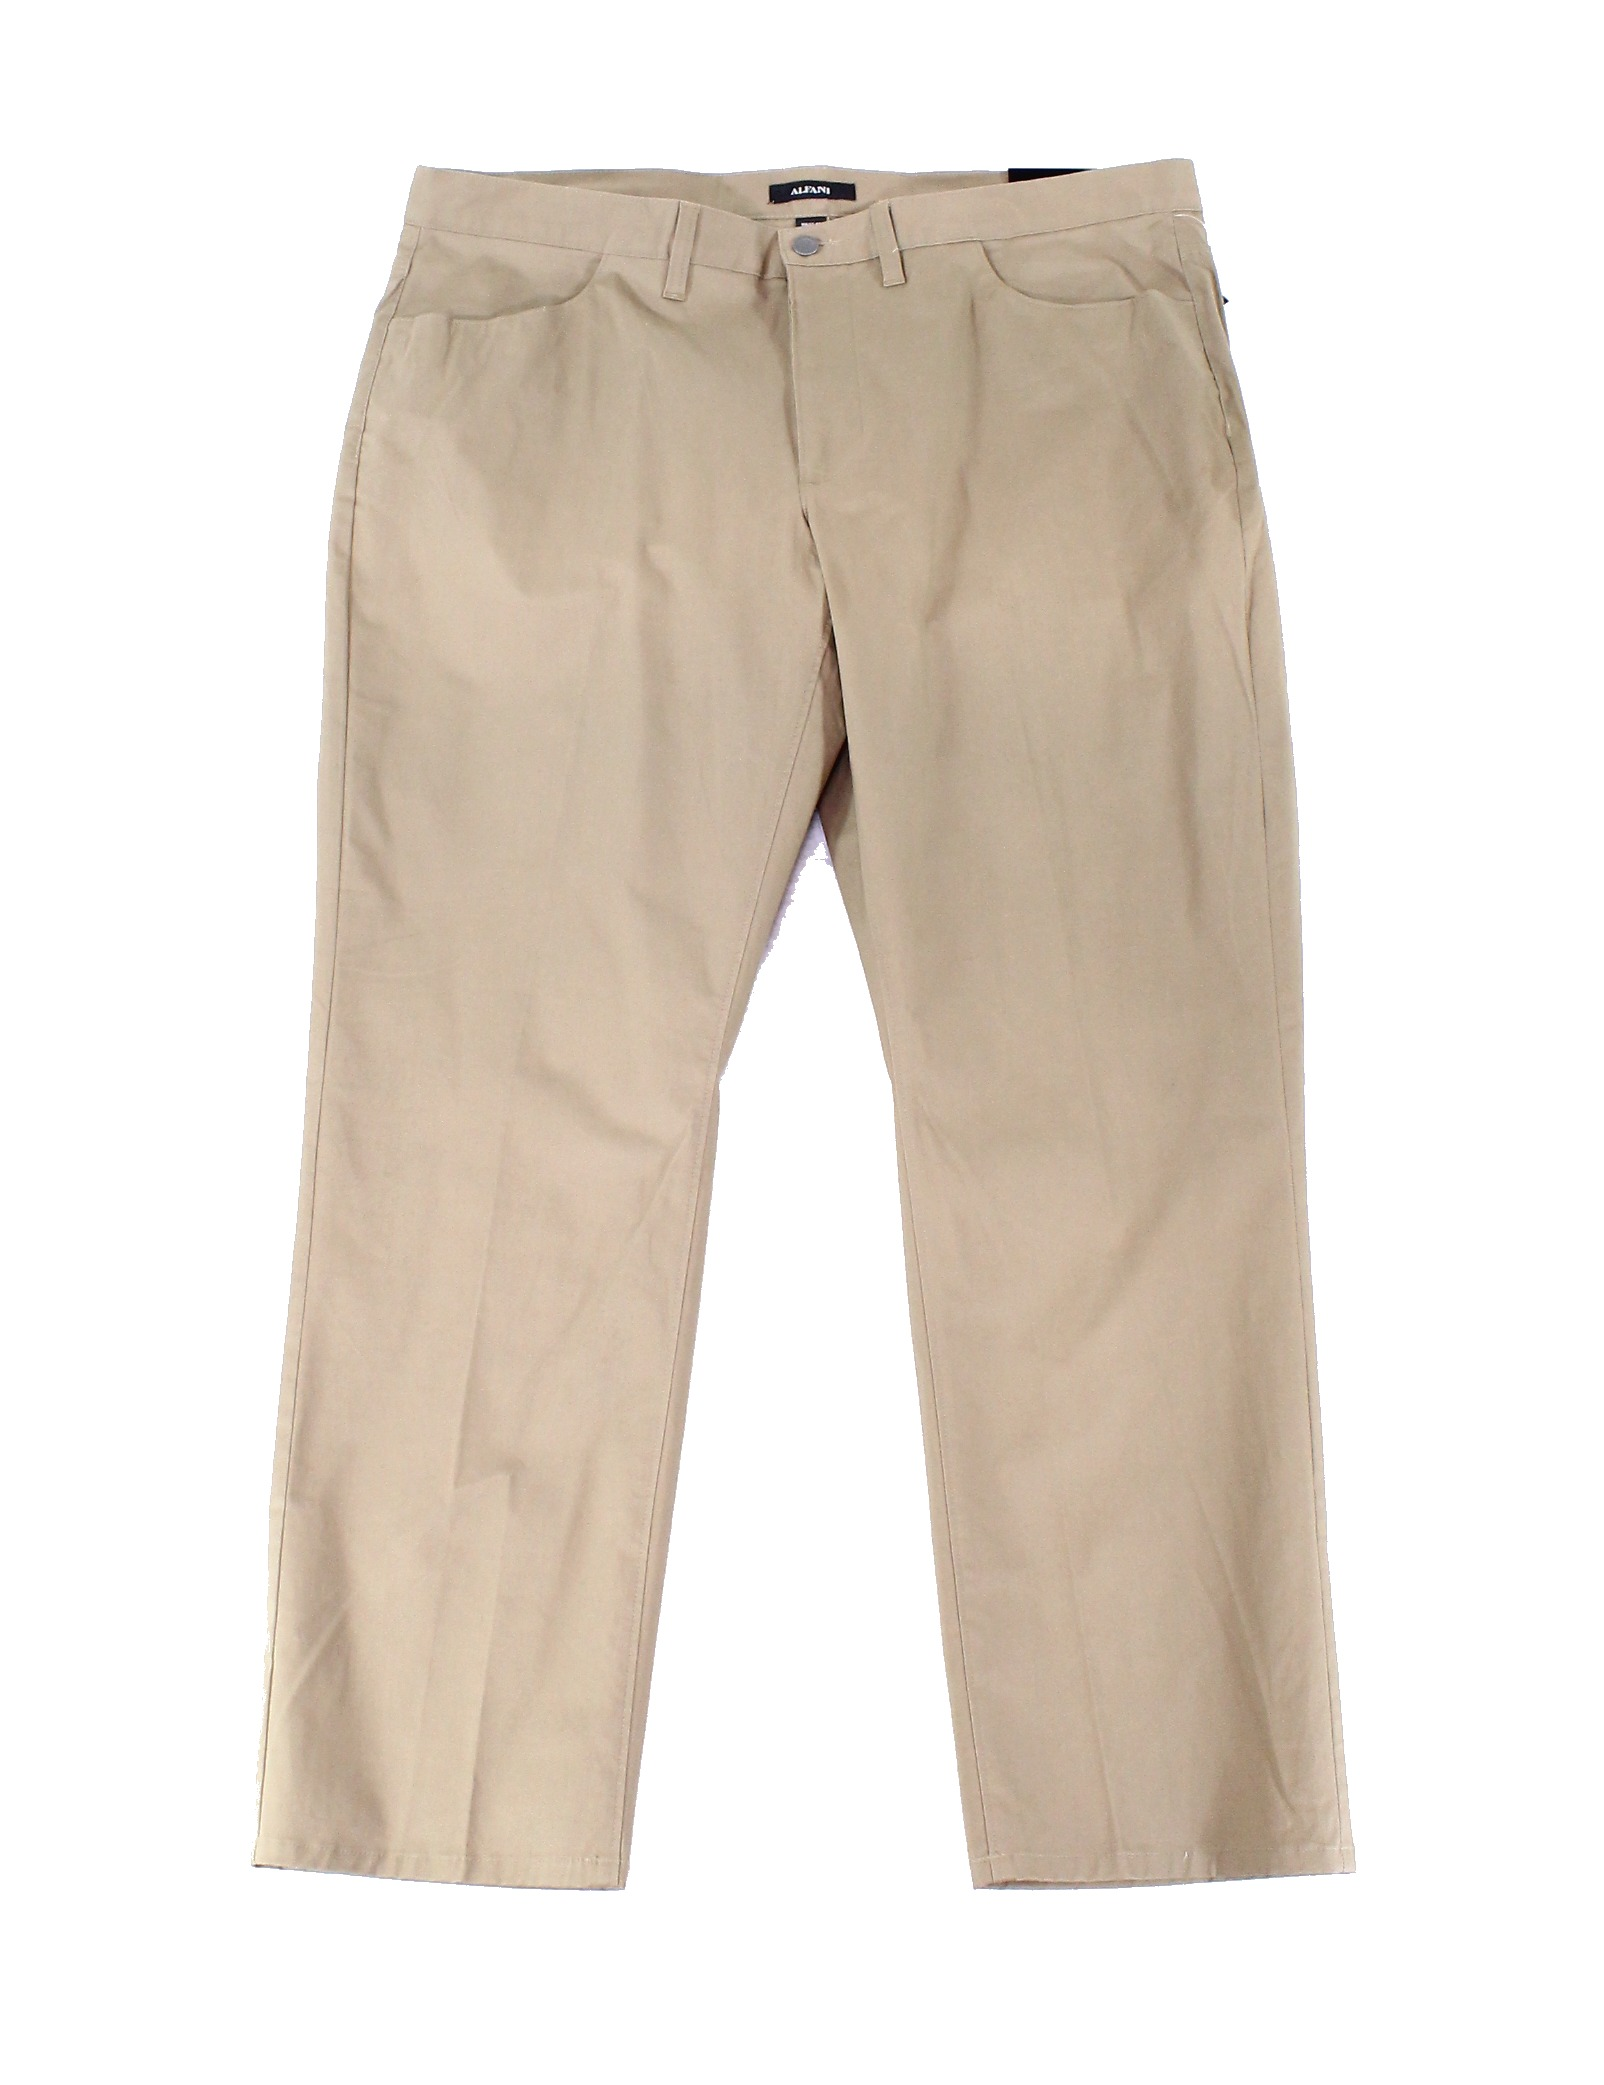 Alfani Mens 33x30 Button-Front Flat-Front Pants Stretch